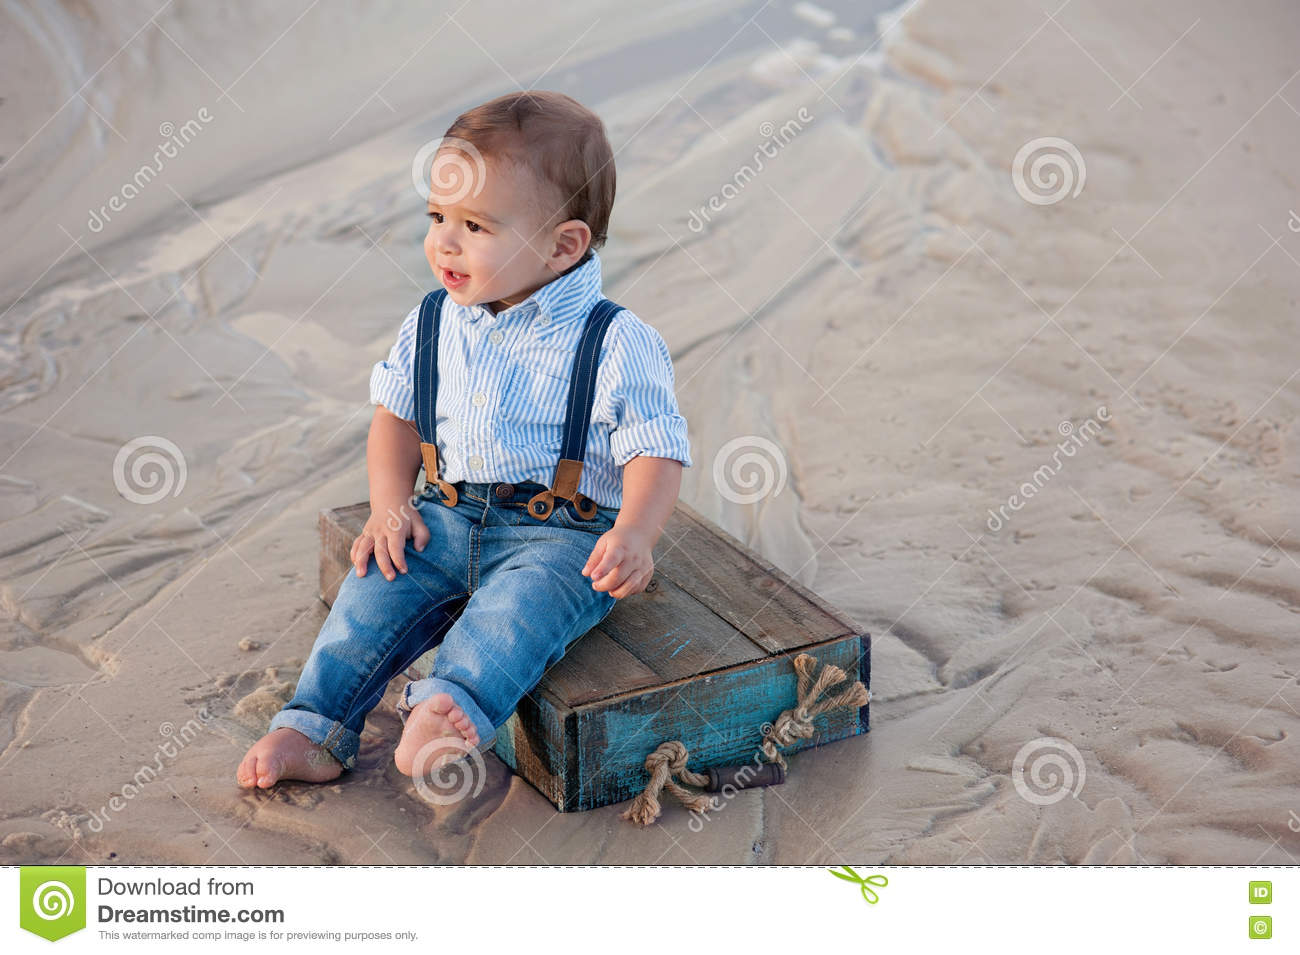 A One Year Old Baby Boy Sitting On Blue Wooden Crate Shot Outdoors Sandy Beach